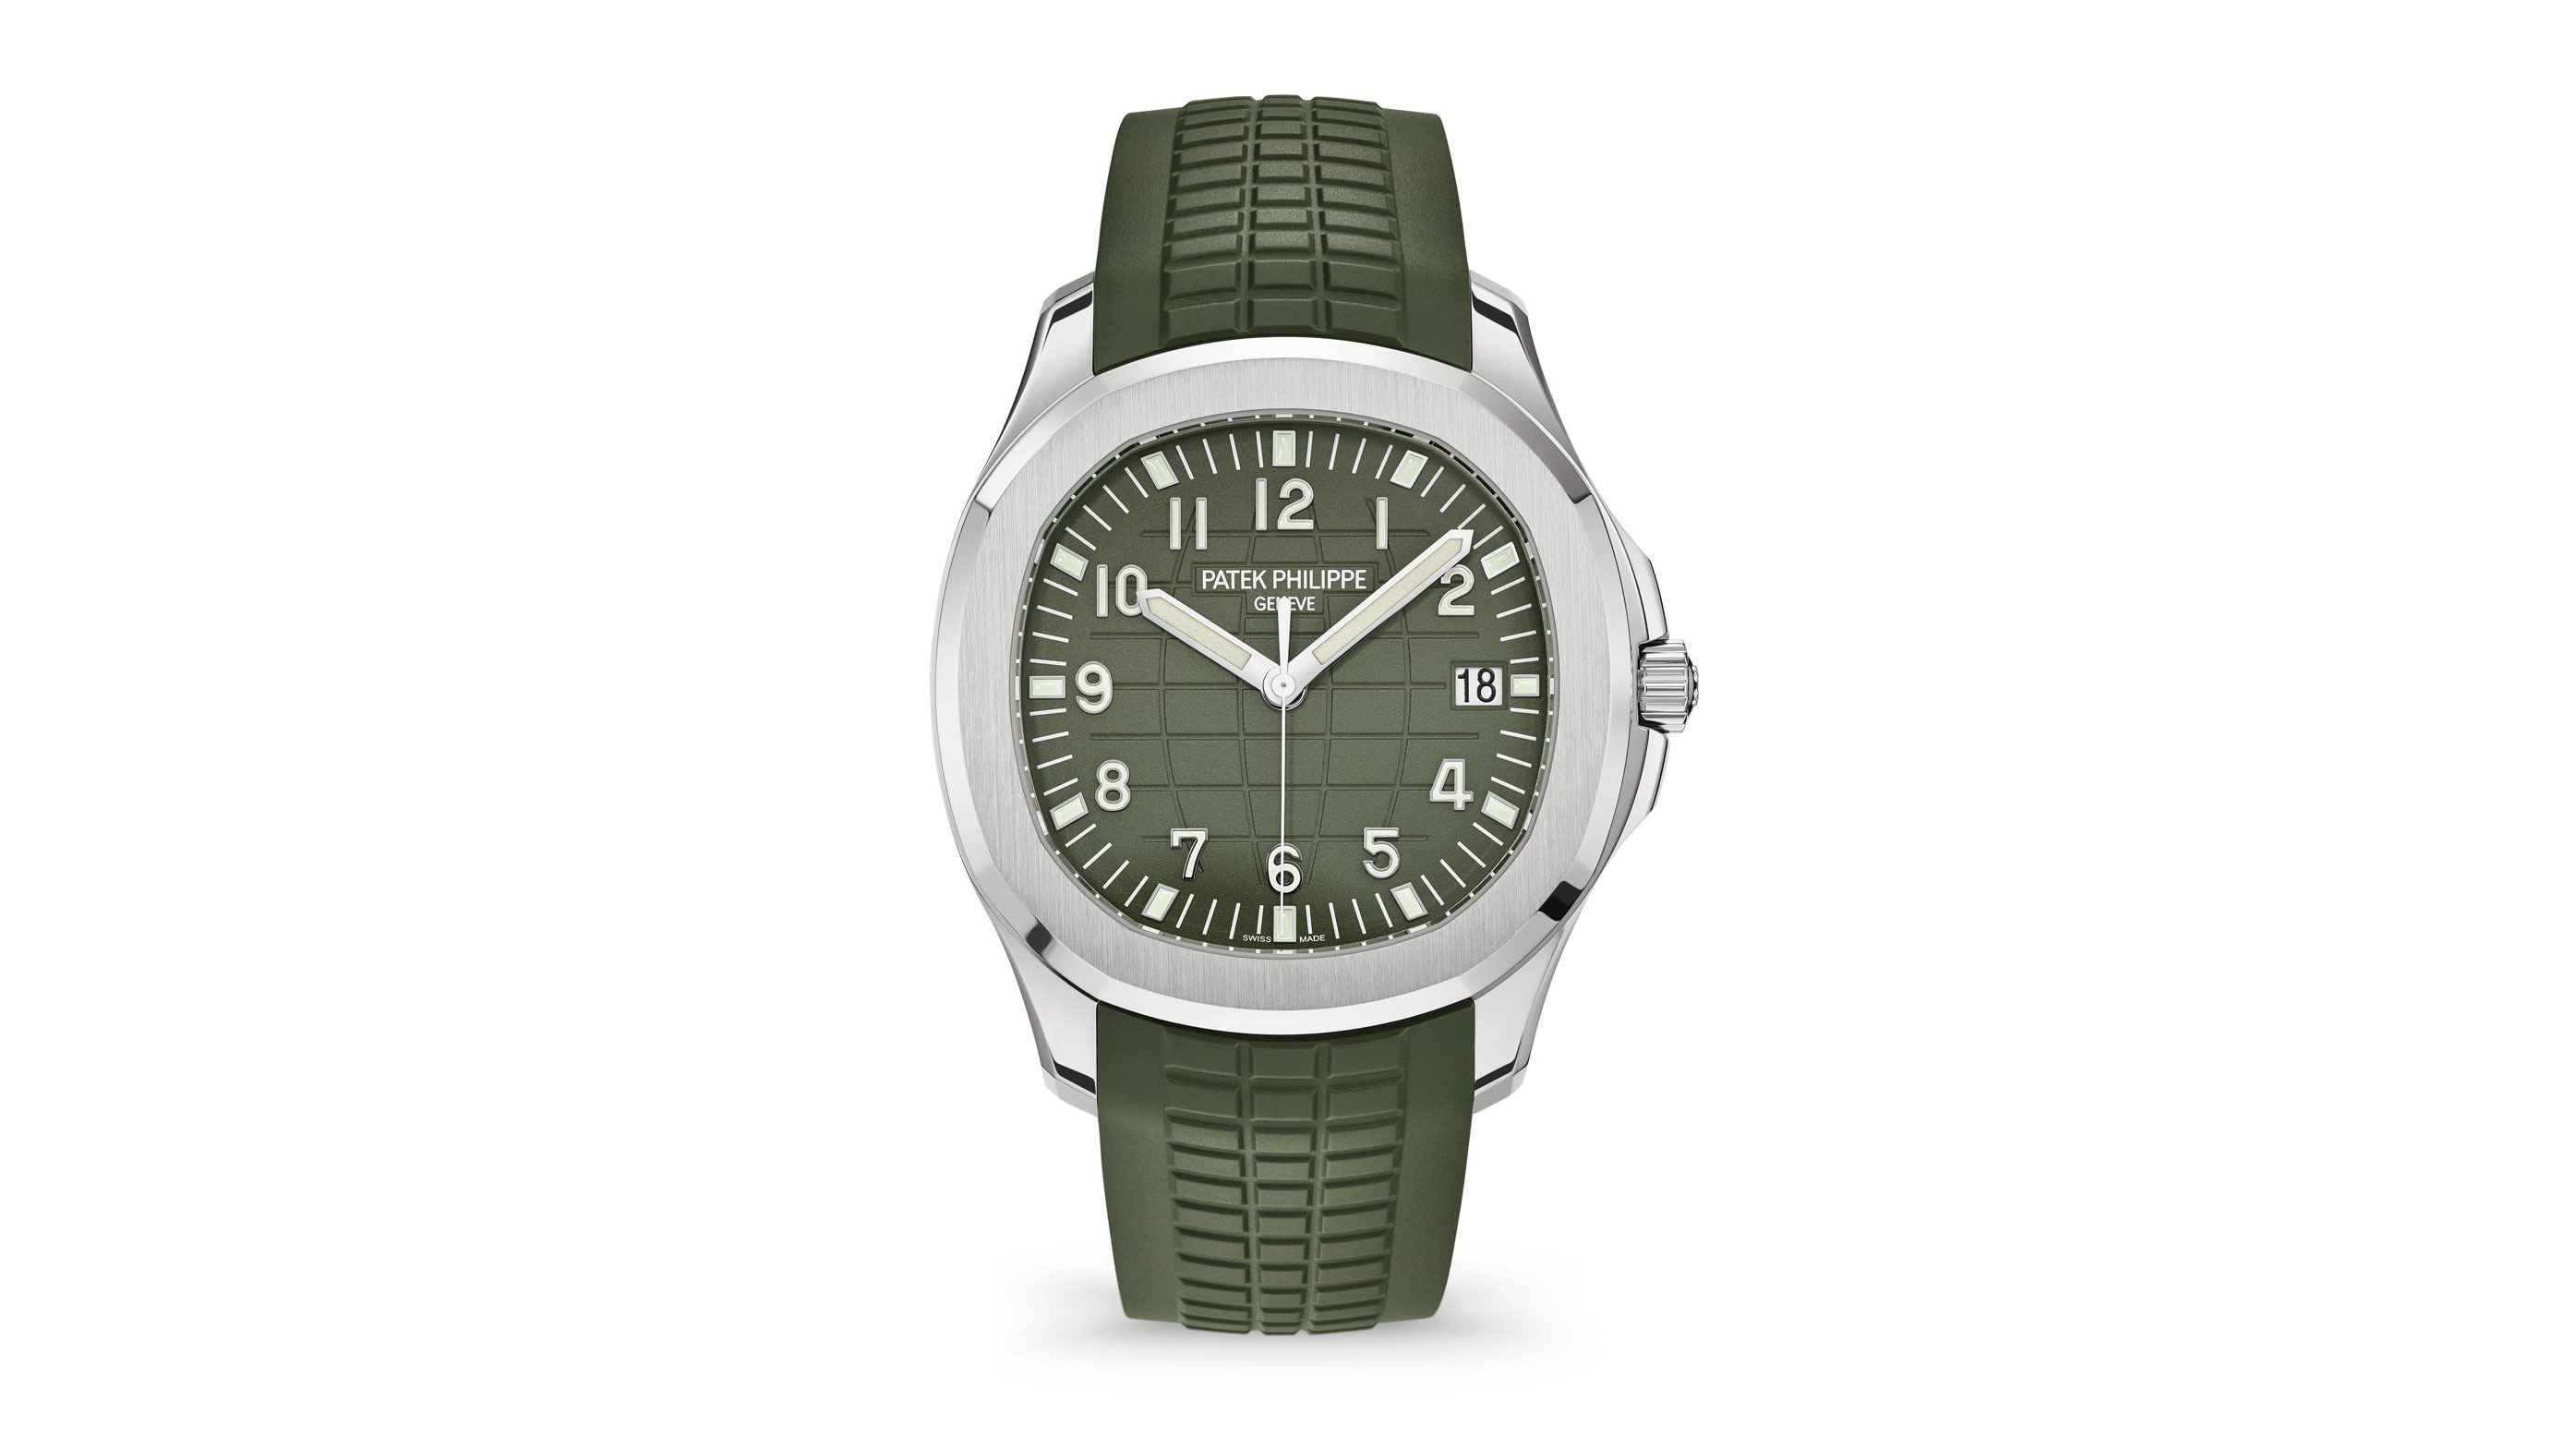 P Philippe Watch Introducing The Patek Philippe Aquanaut 5168g With Khaki Green